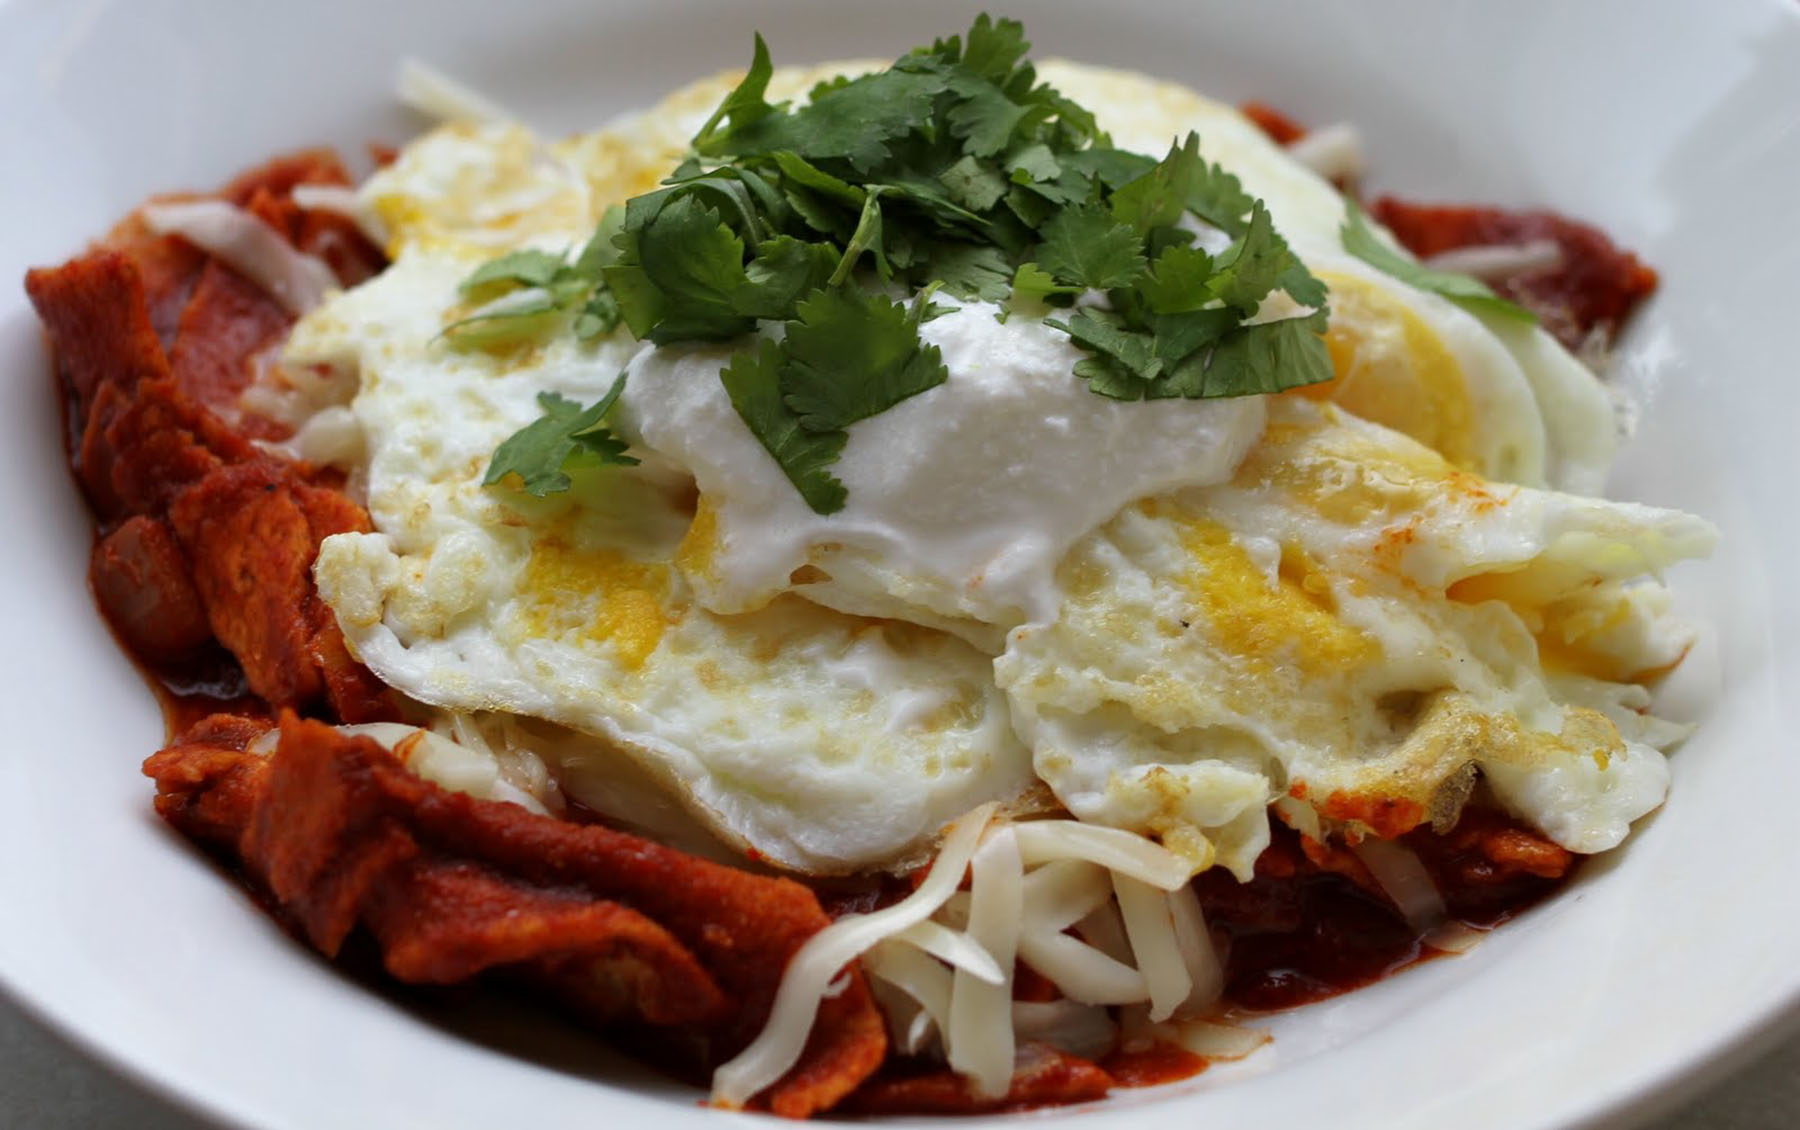 Chilaquiles con Salsa Roja - Chilaquiles with Red Salsa